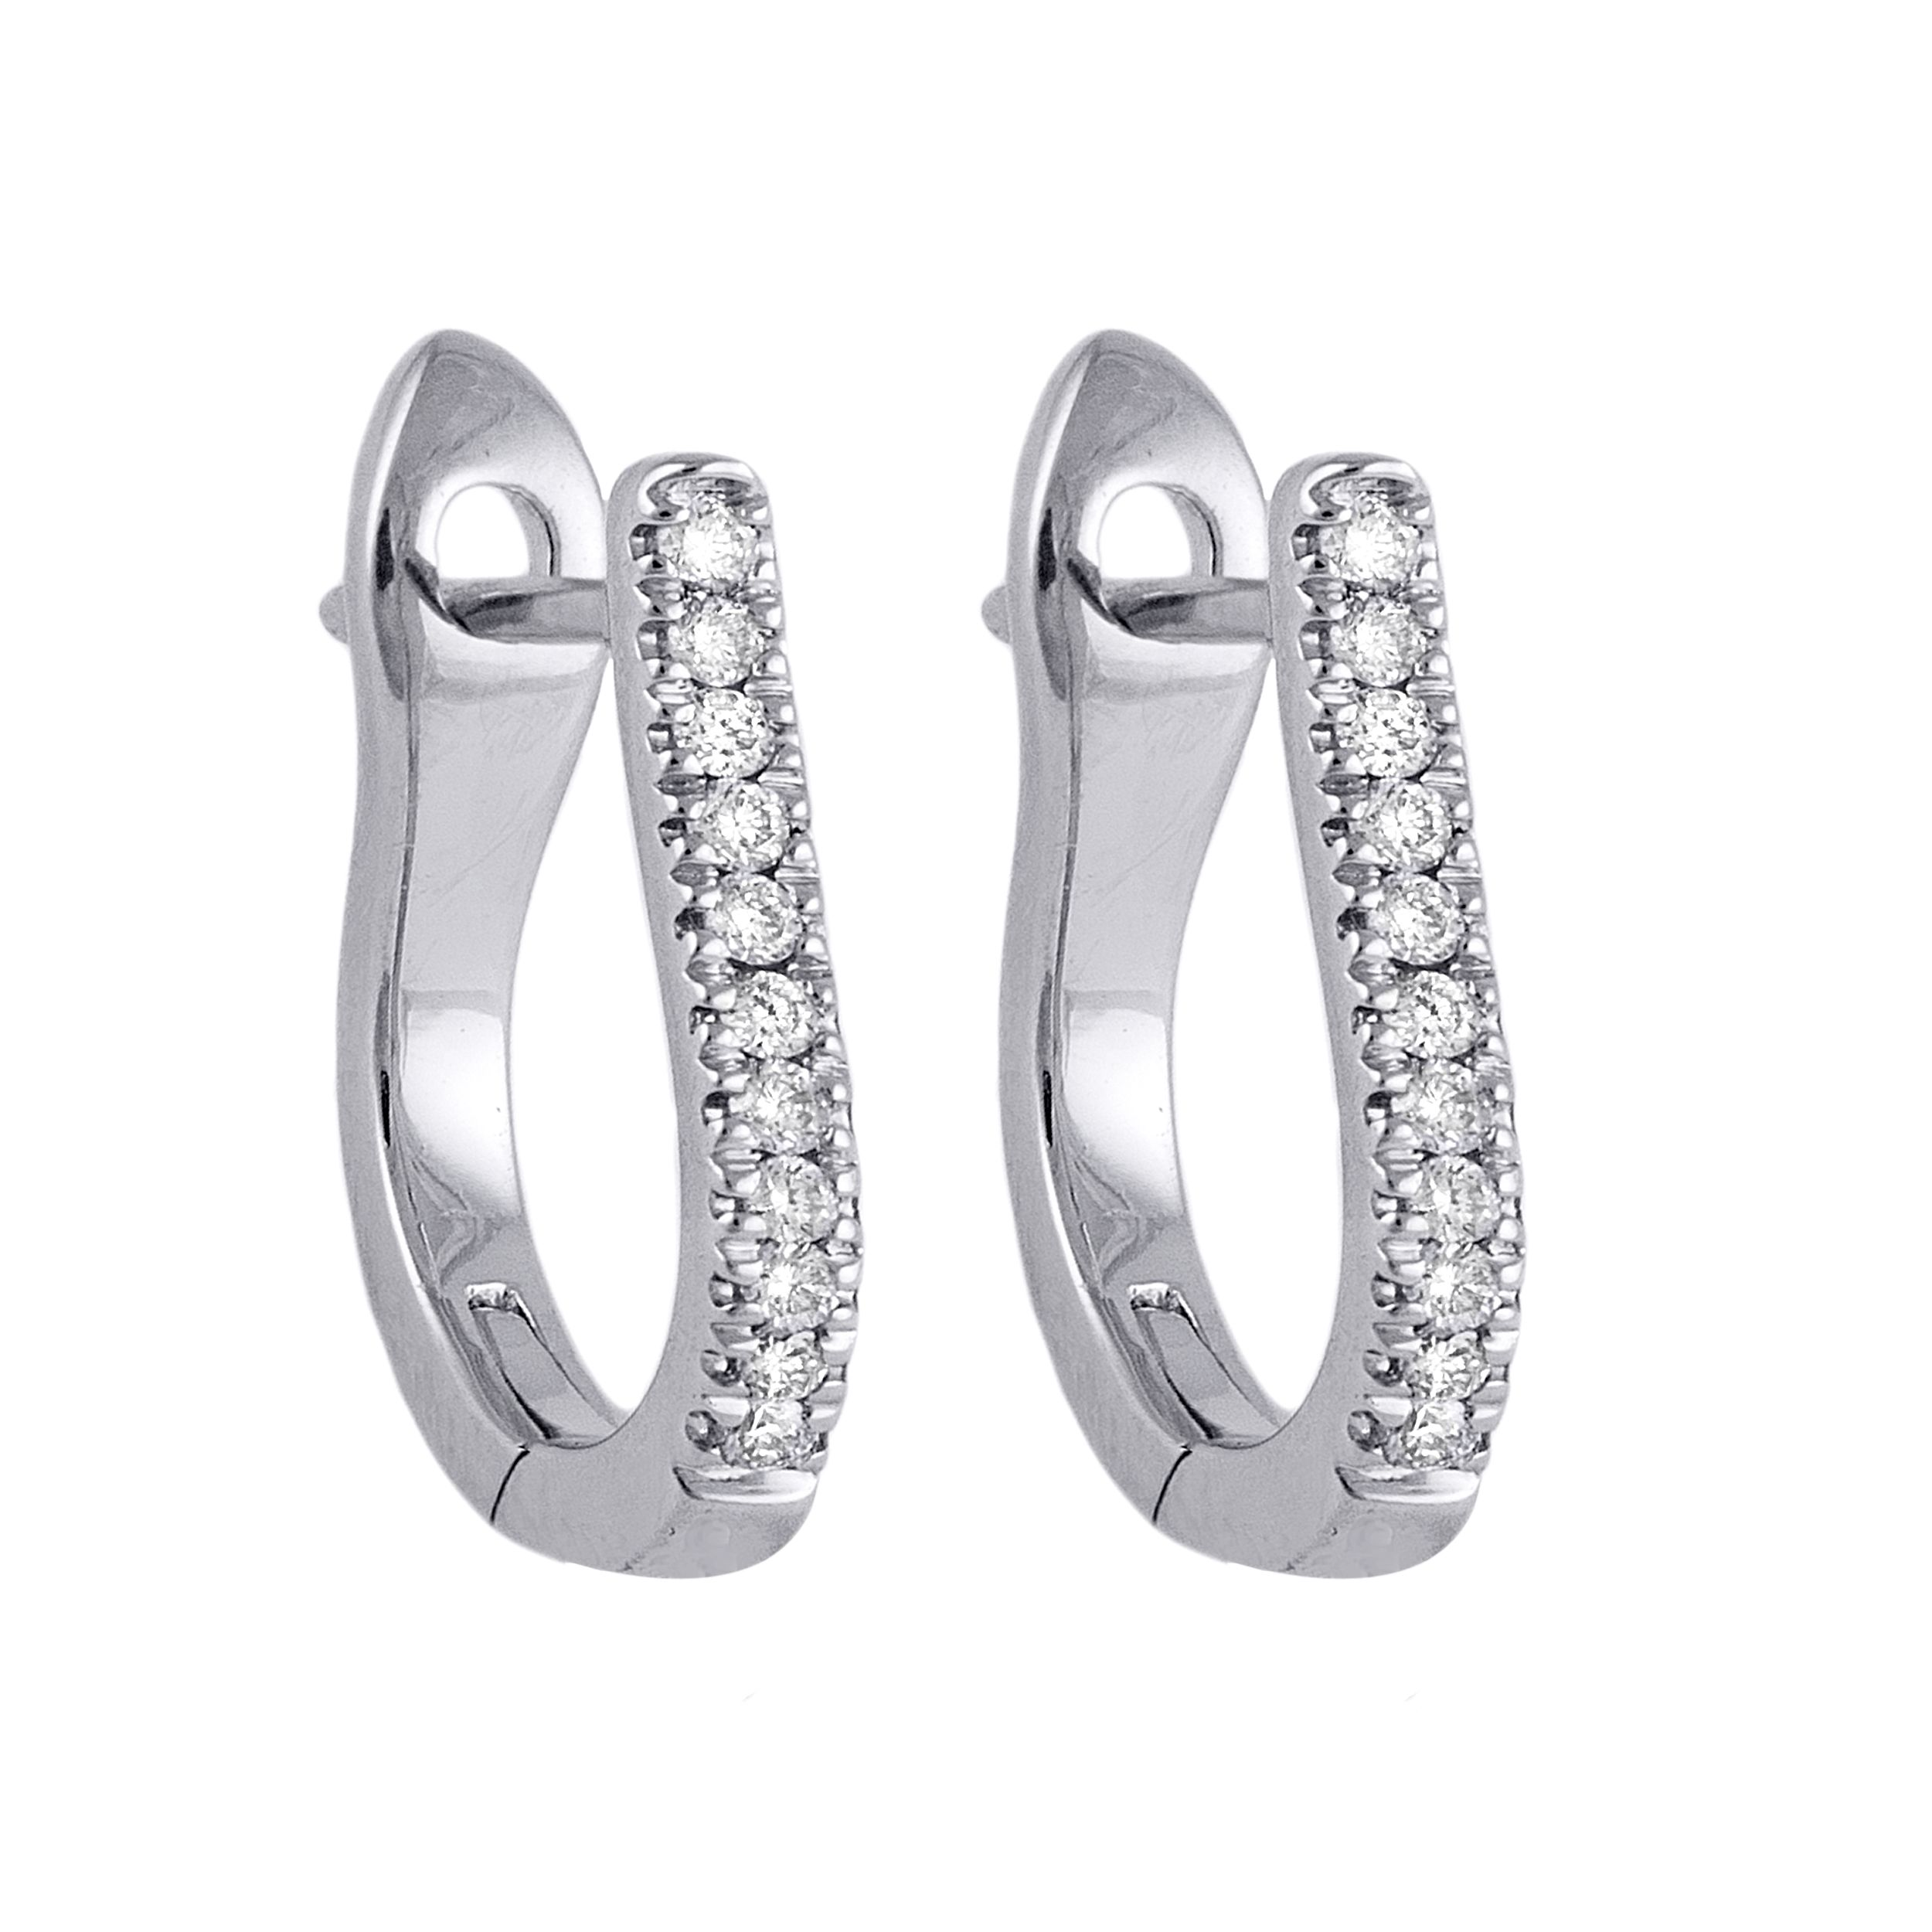 a7807a9977e43 Jewelry | Hollywood Hills Jewelery | Earrings, Diamond hoop earrings ...